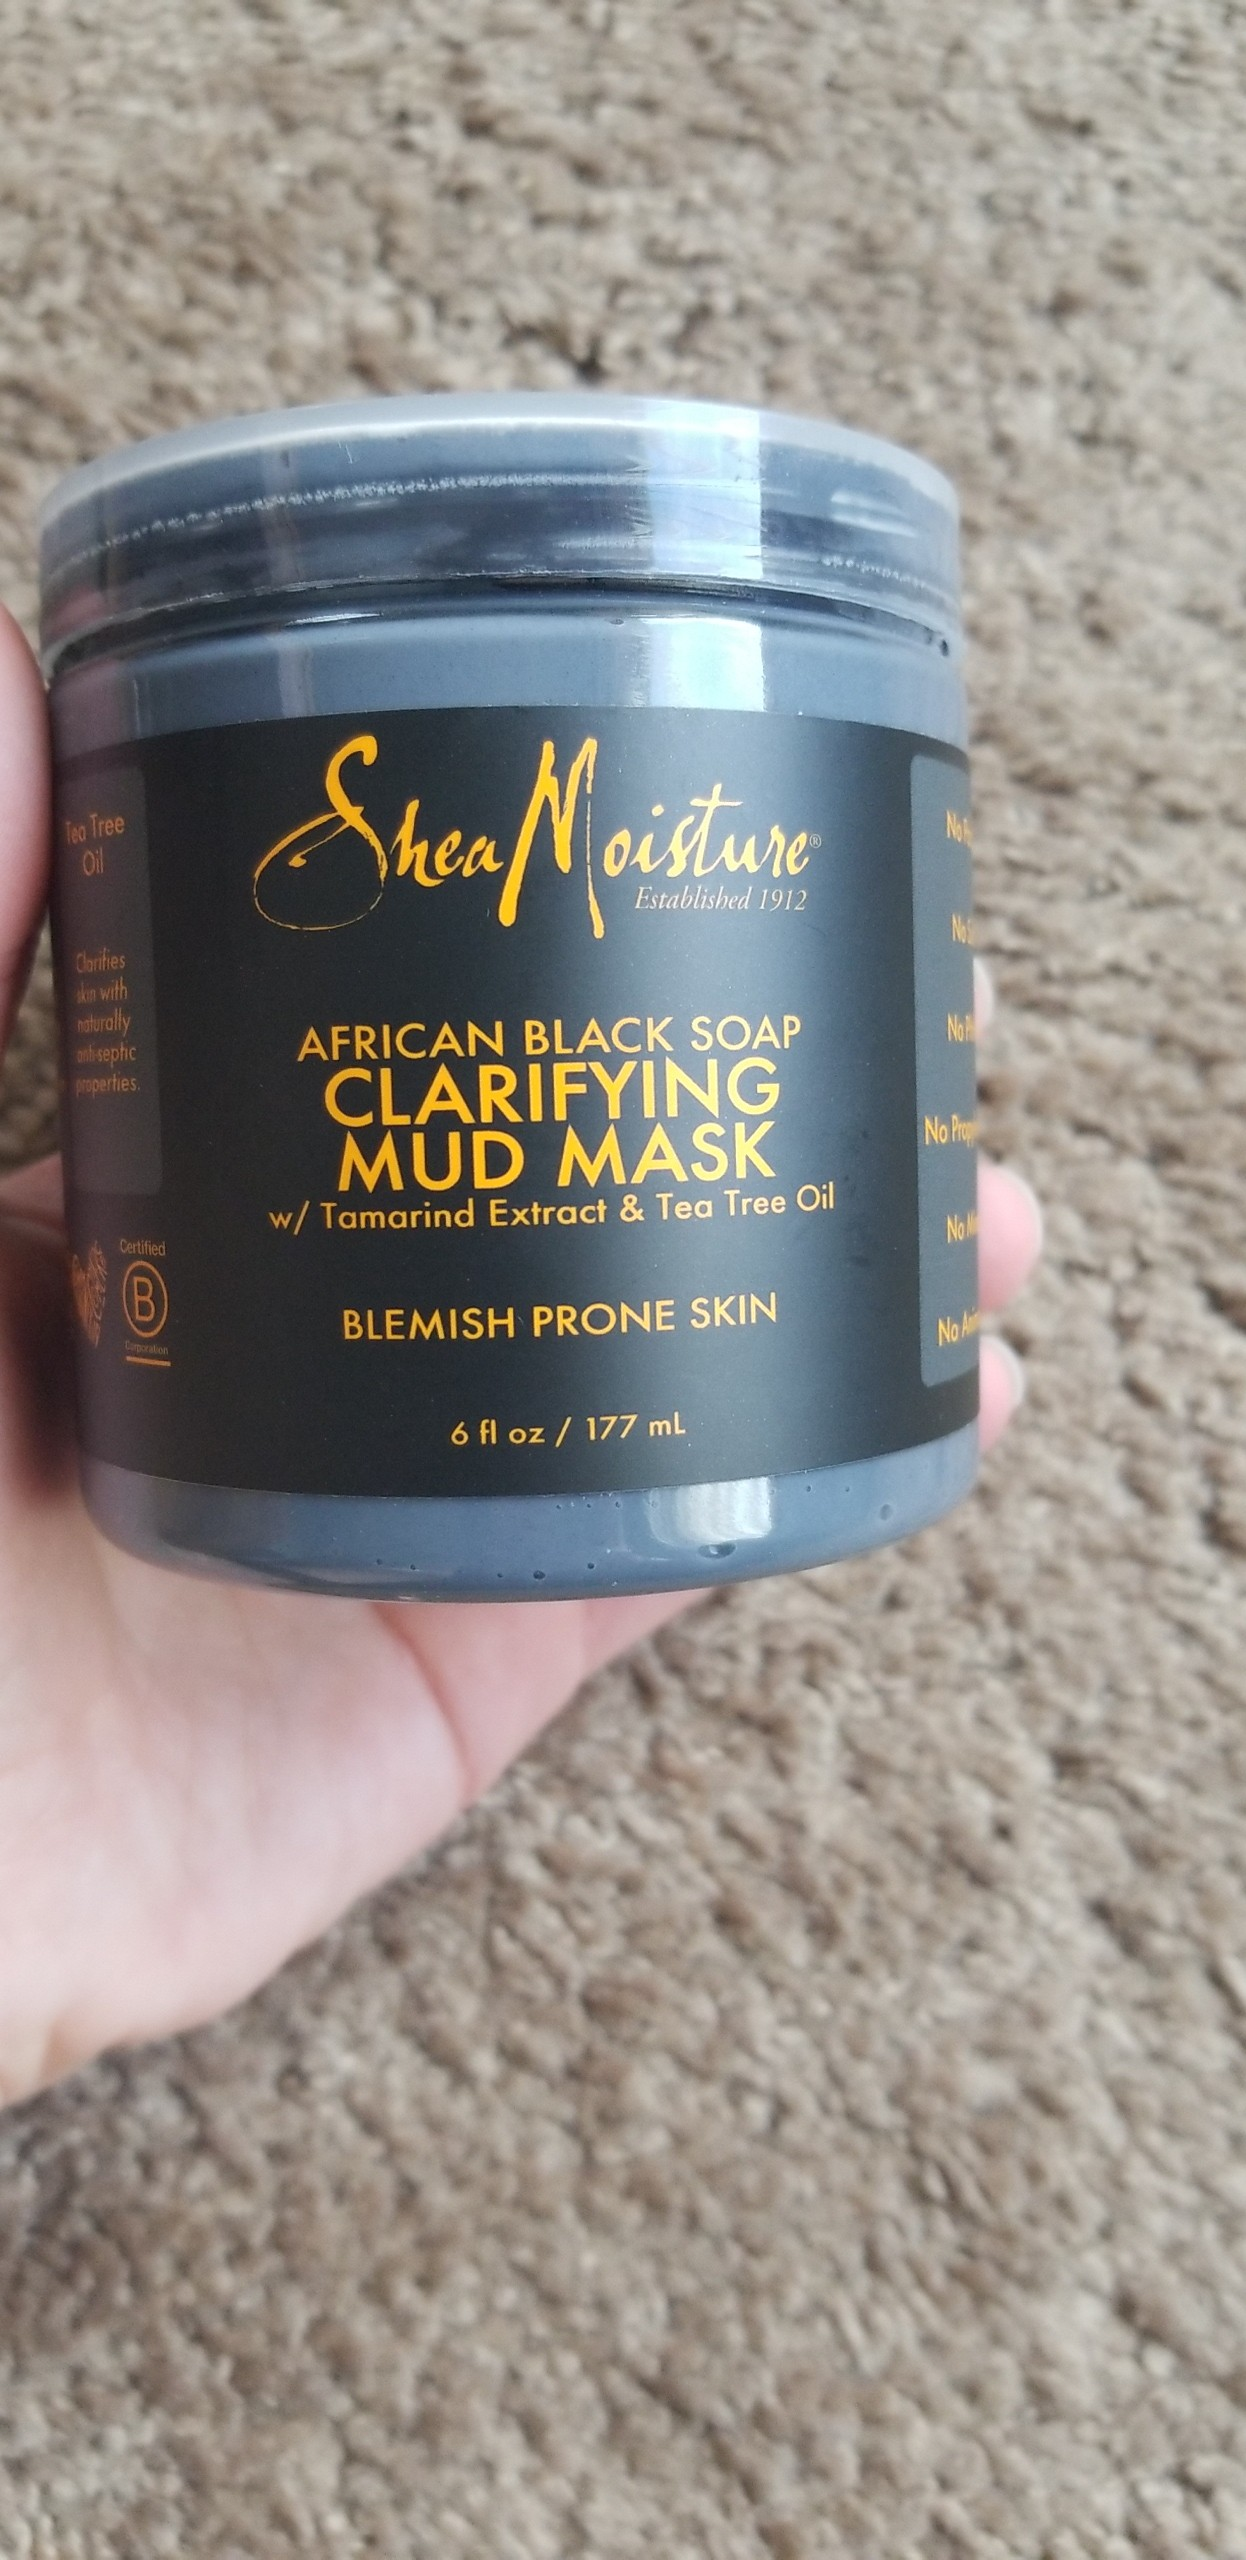 African Black Soap Clarifying Mud Mask by SheaMoisture #21